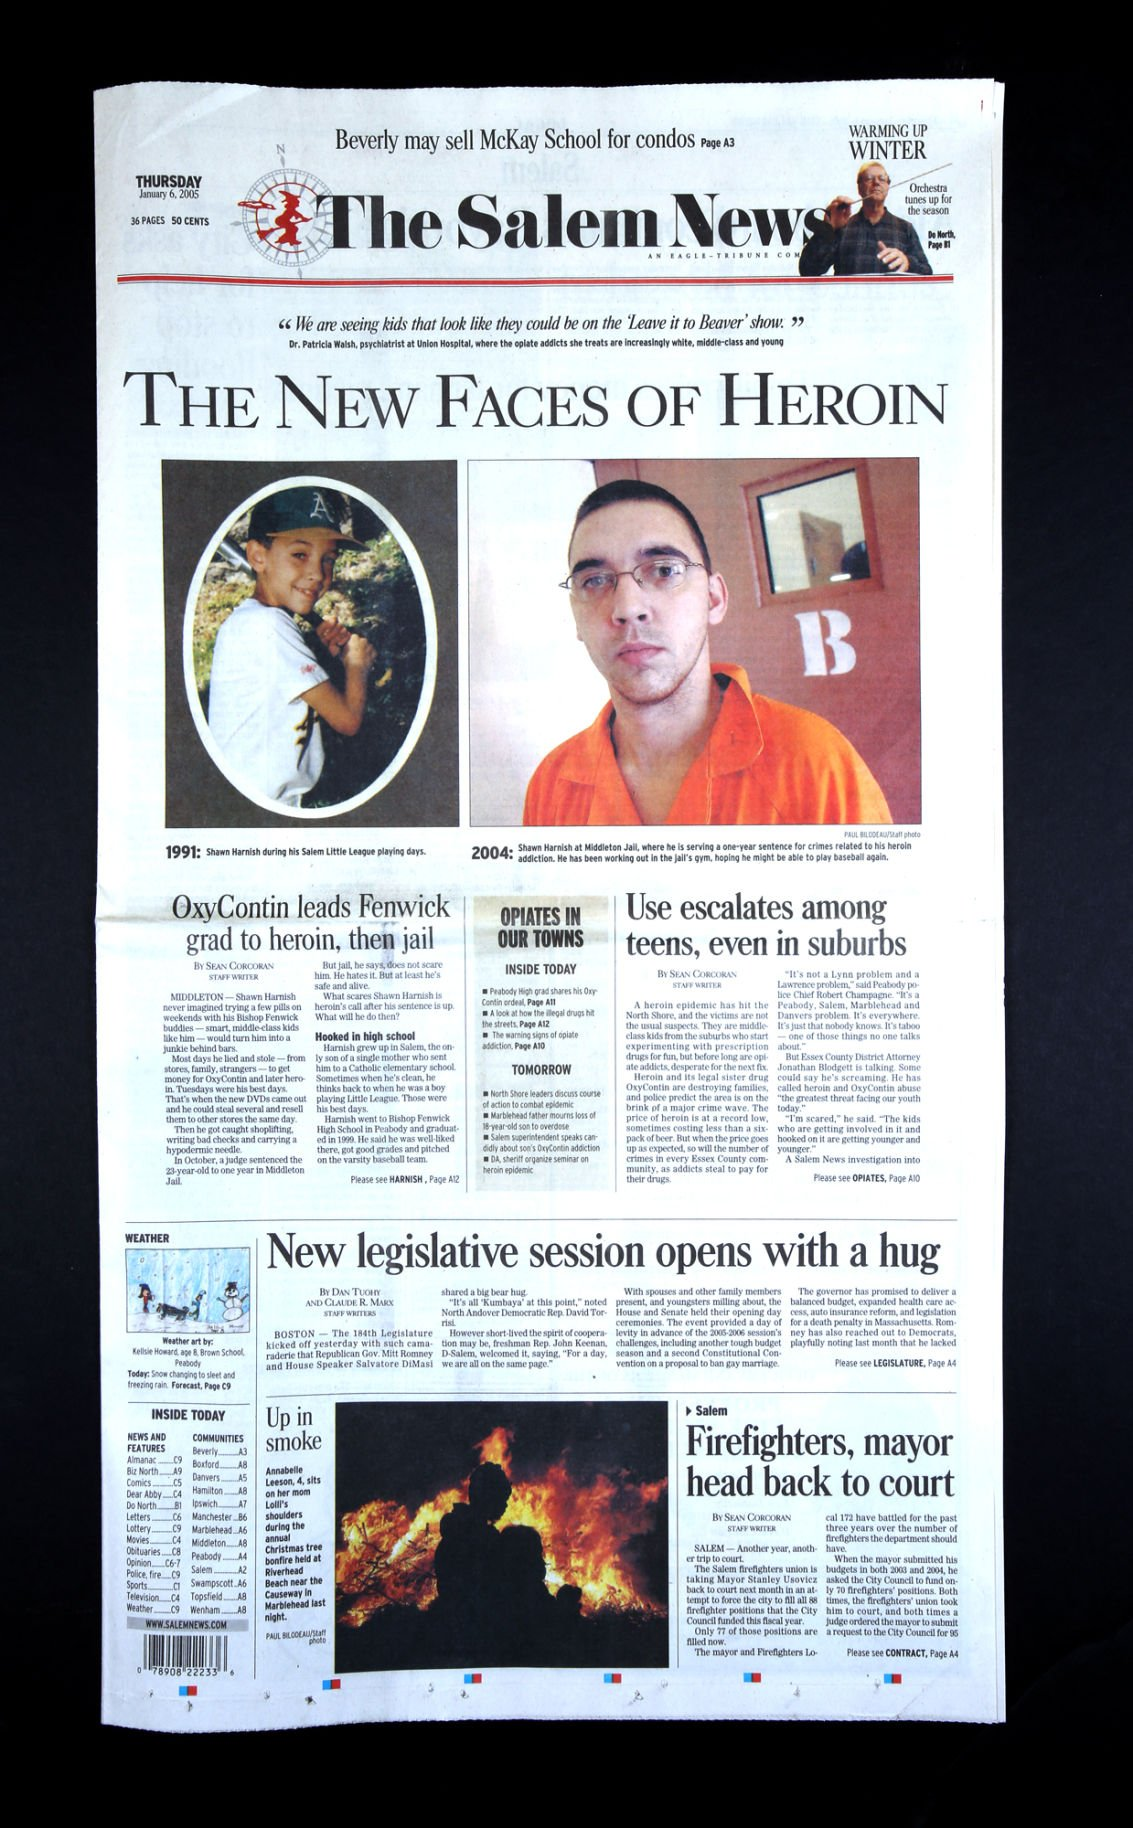 New faces of heroin